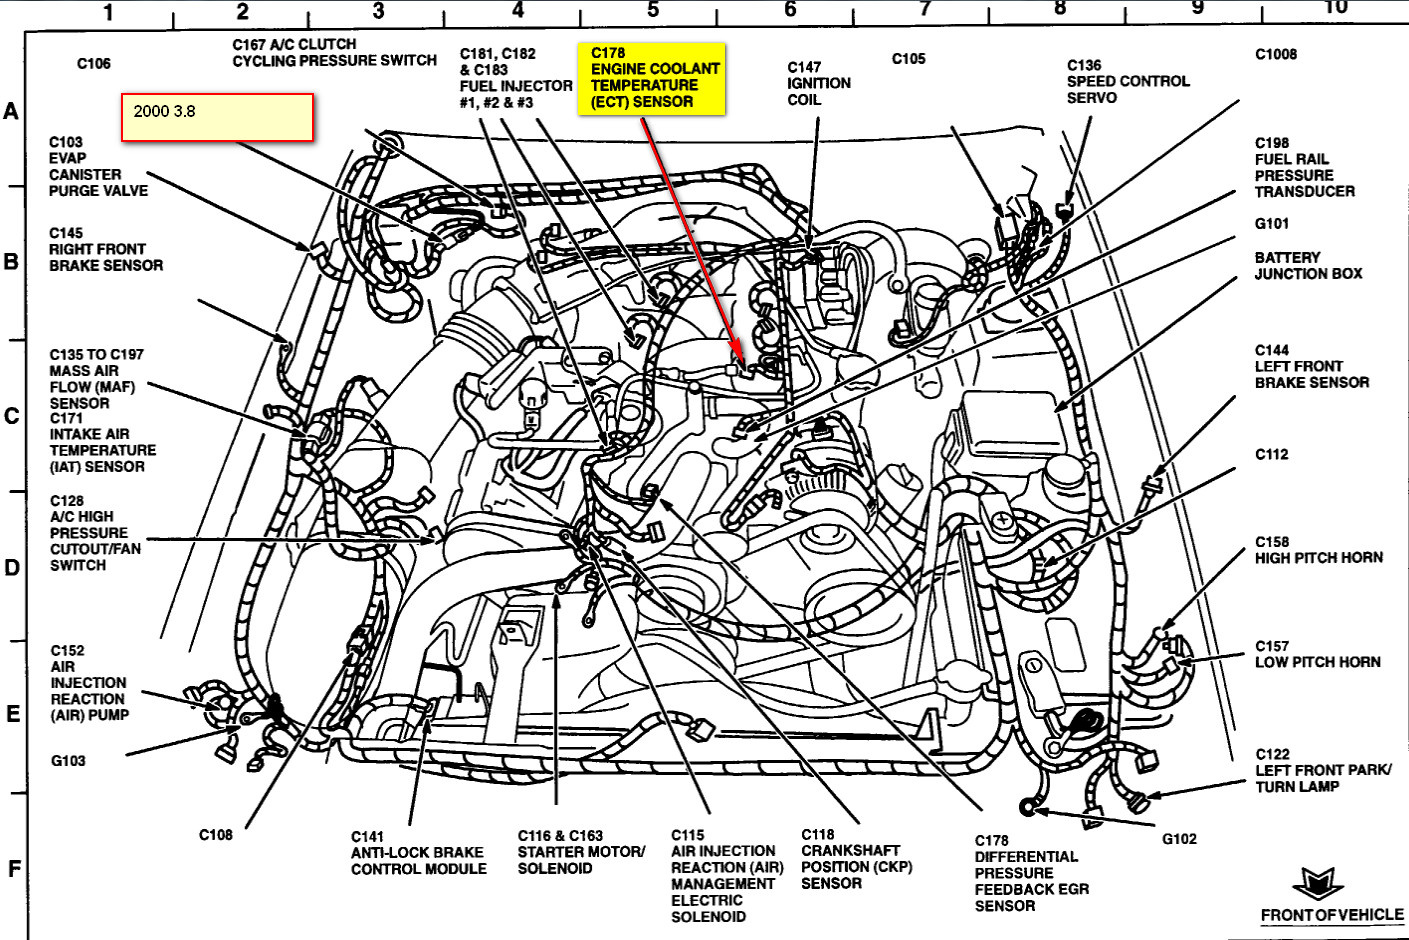 hight resolution of 2011 mustang engine diagram wiring diagram expert 2011 ford mustang v6 engine diagram 2011 ford mustang v6 engine schematics